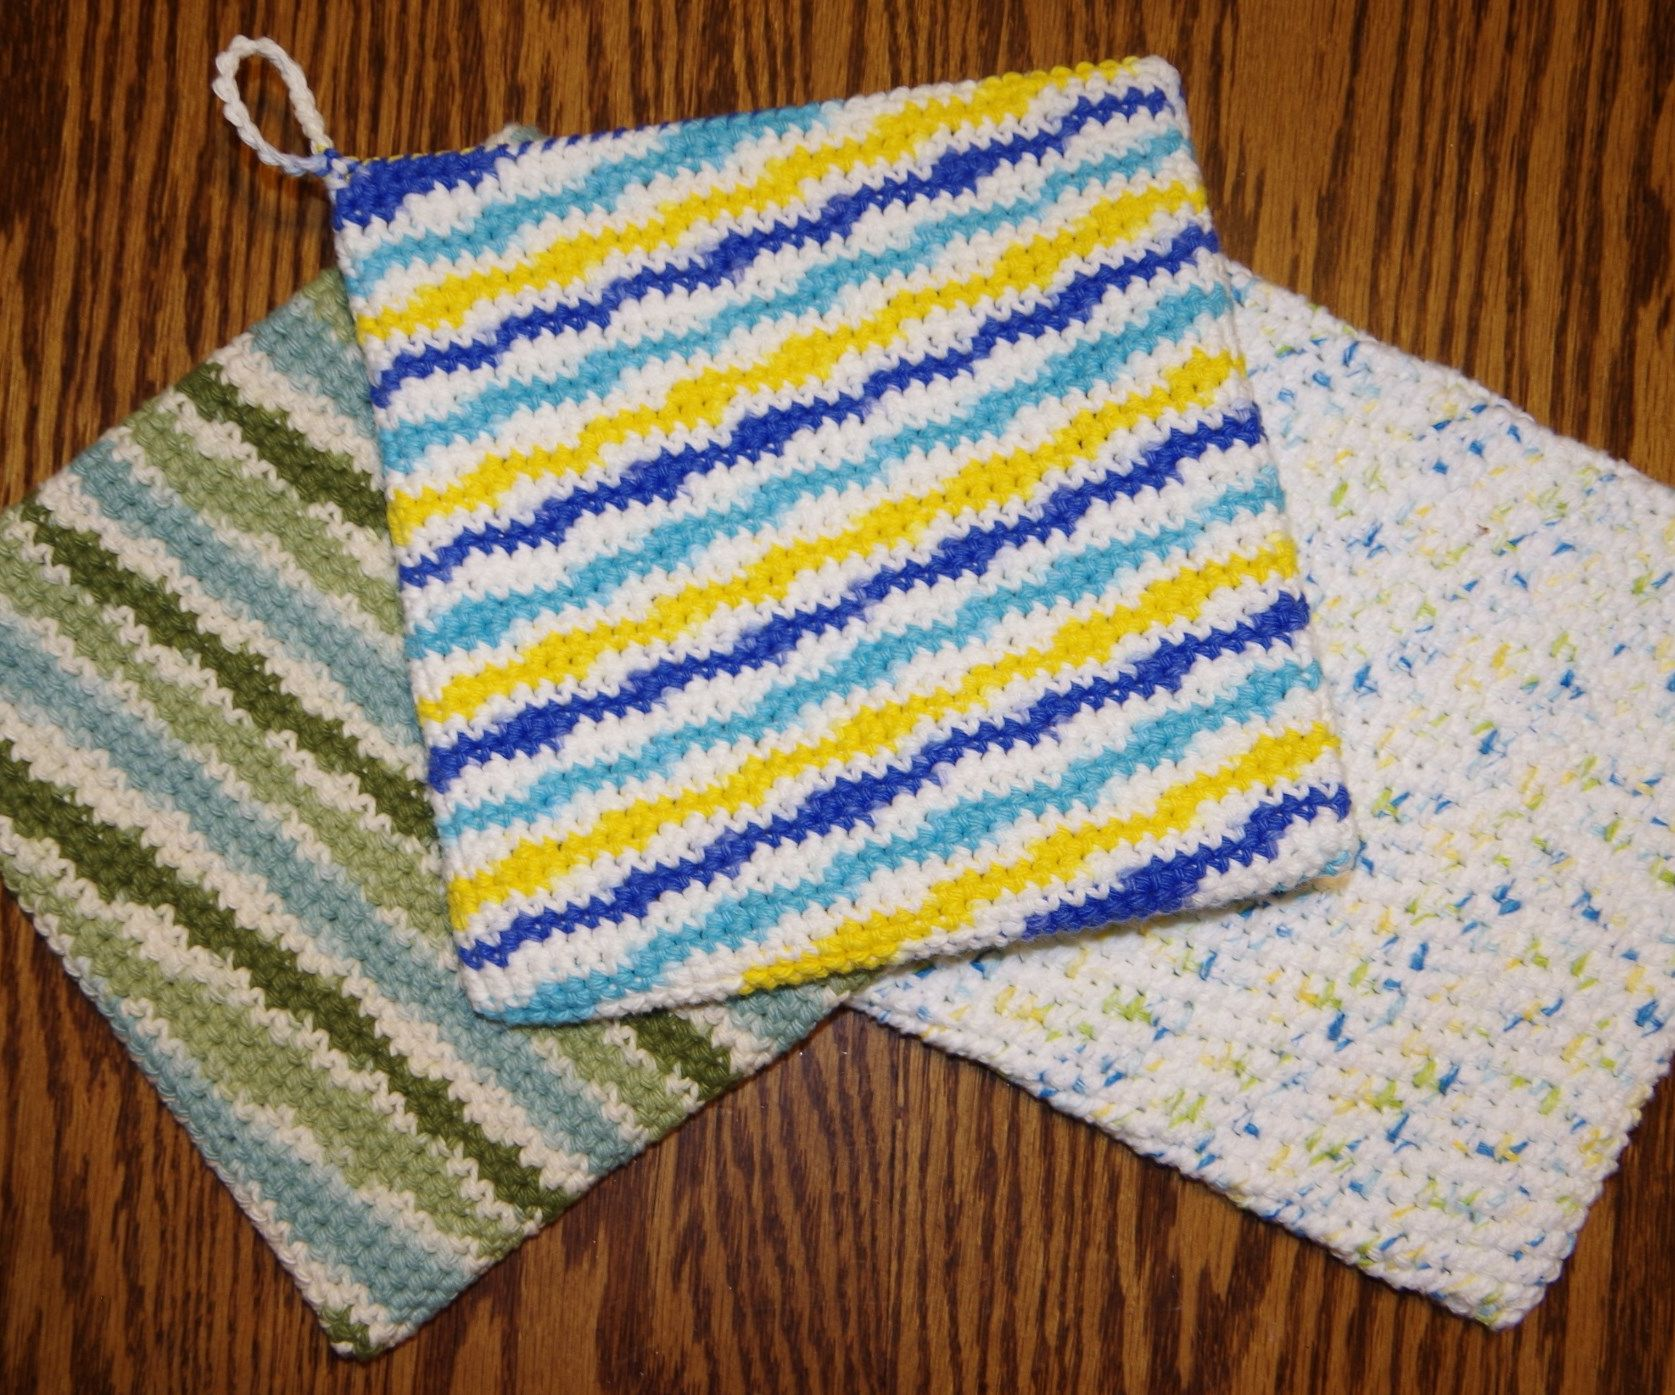 Double Thick Single Crochet Potholder : 15 Steps (with Pictures ...